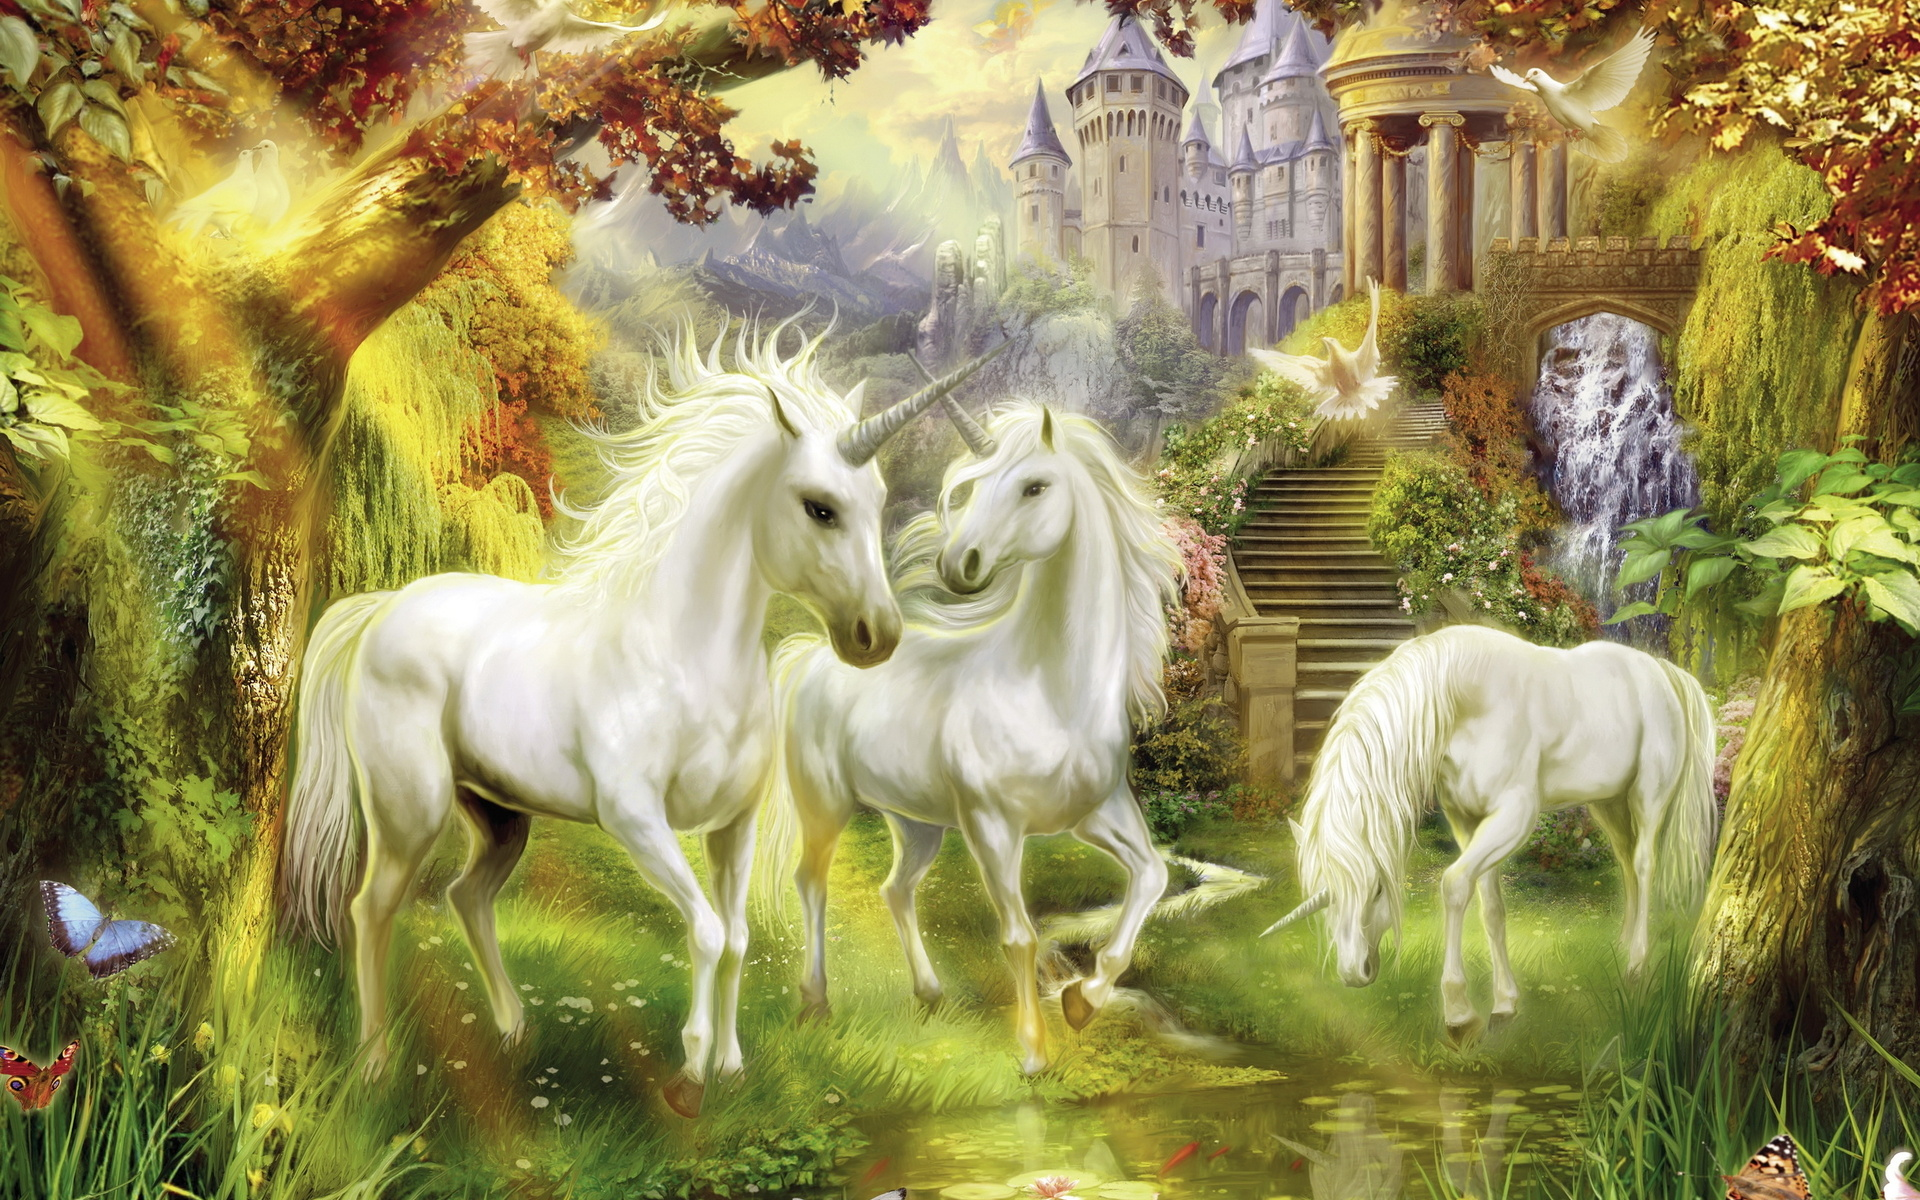 thomas-kinkade fantasy unicorn magical architecture buildings trees forest paintings horses artistic flowers